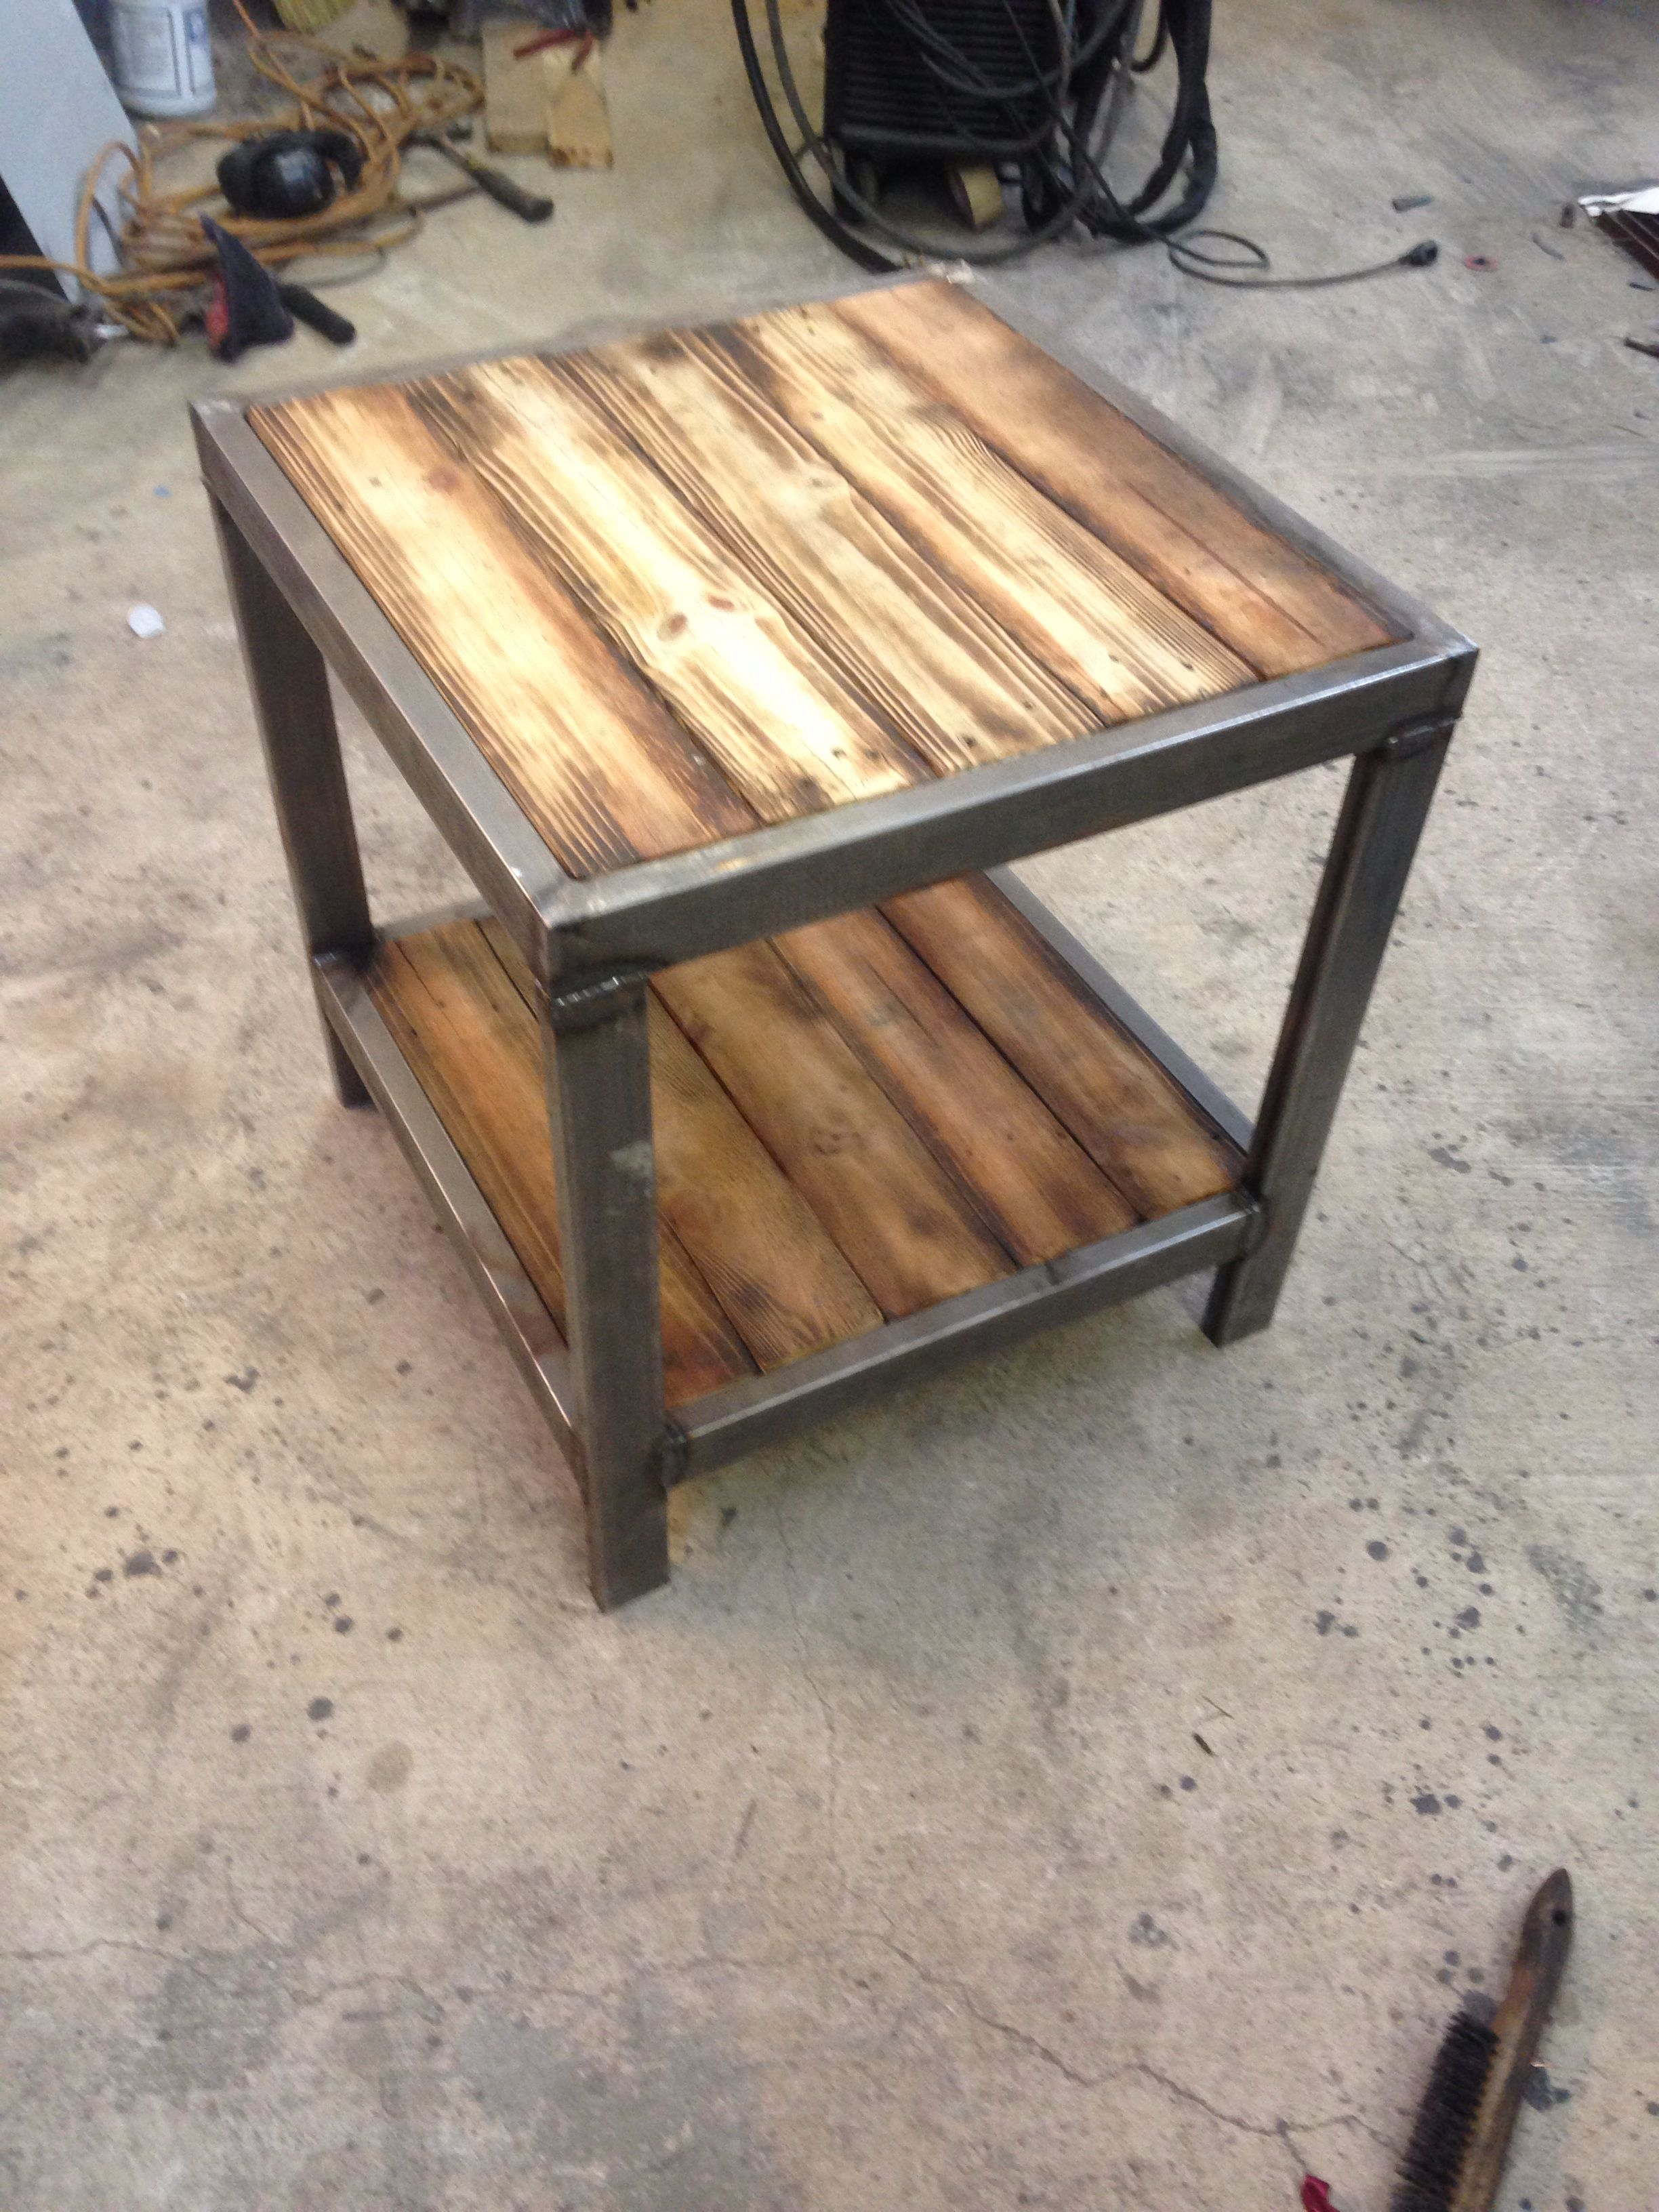 End Table Rustic Industrial Furniture Wood Furniture Design Refinishing Furniture Rustic metal and wood end tables